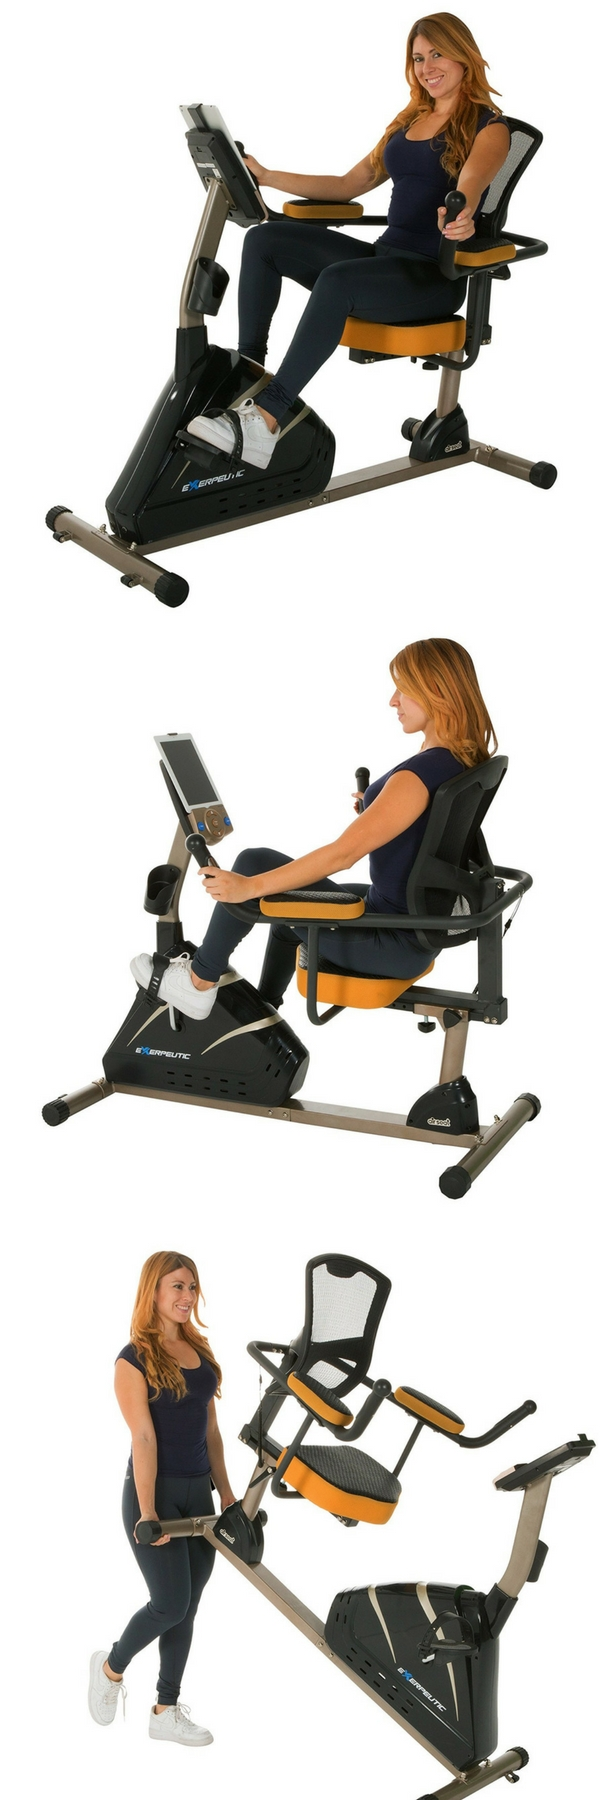 Exerpeutic 4000 Magnetic Recumbent Exercise Bike With 12 Workout Programs Http Www Recumbentbike Best Exercise Bike Recumbent Bike Workout Biking Workout